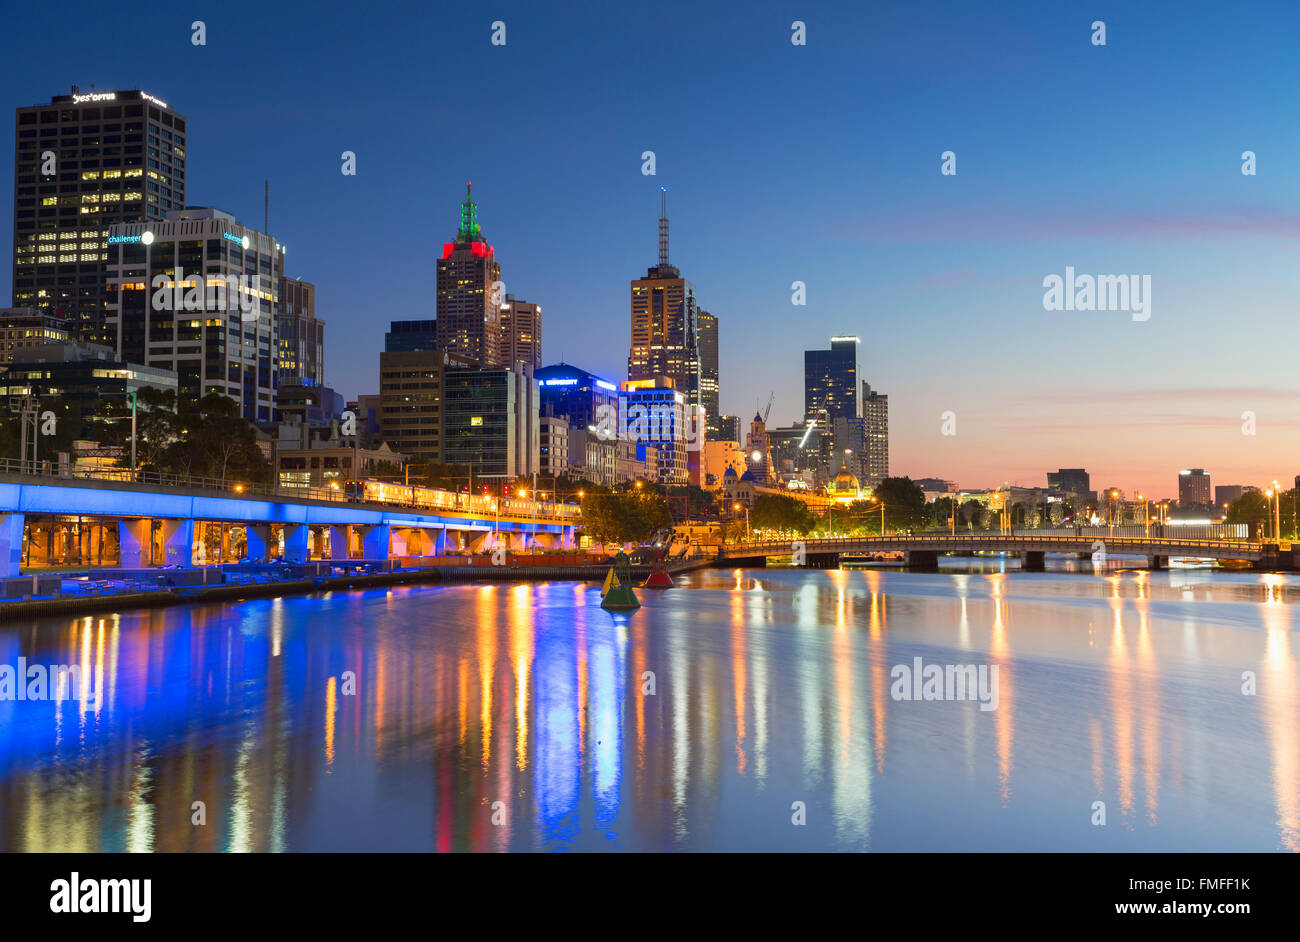 Skyline along Yarra River at dawn, Melbourne, Victoria, Australia - Stock Image